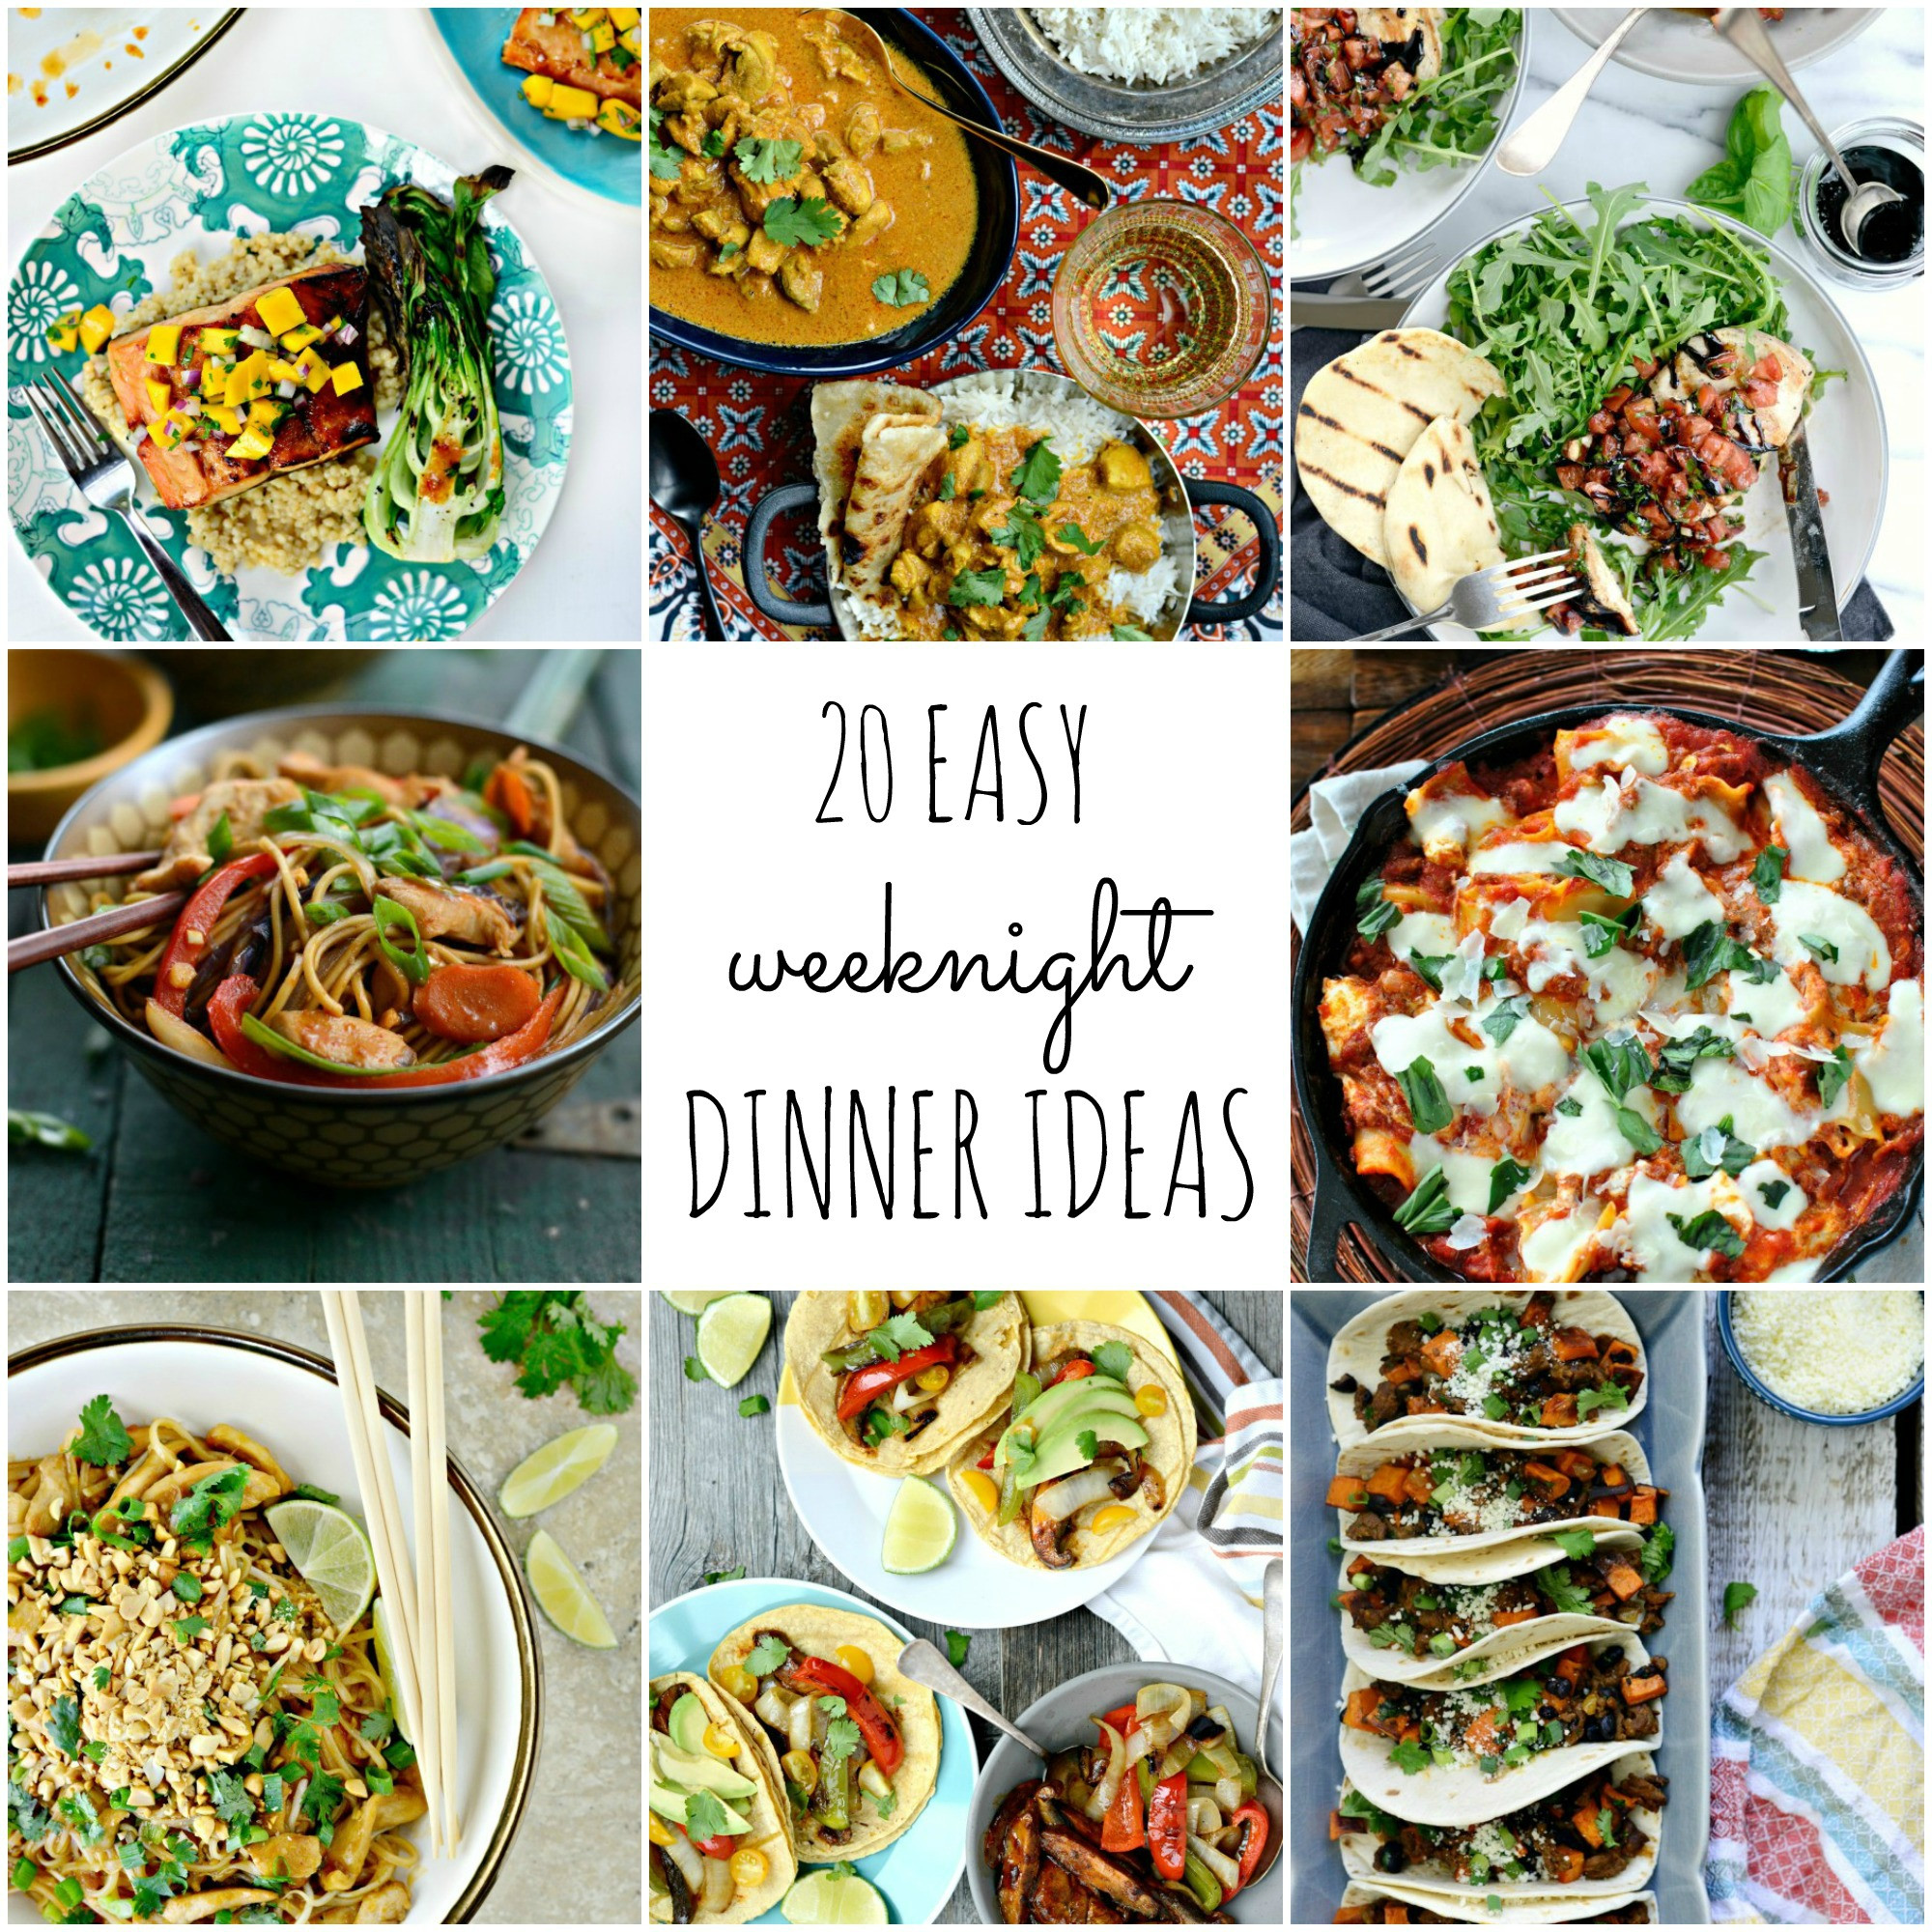 Weekday Dinner Ideas  Simply Scratch 20 Easy Weeknight Dinner Ideas Simply Scratch